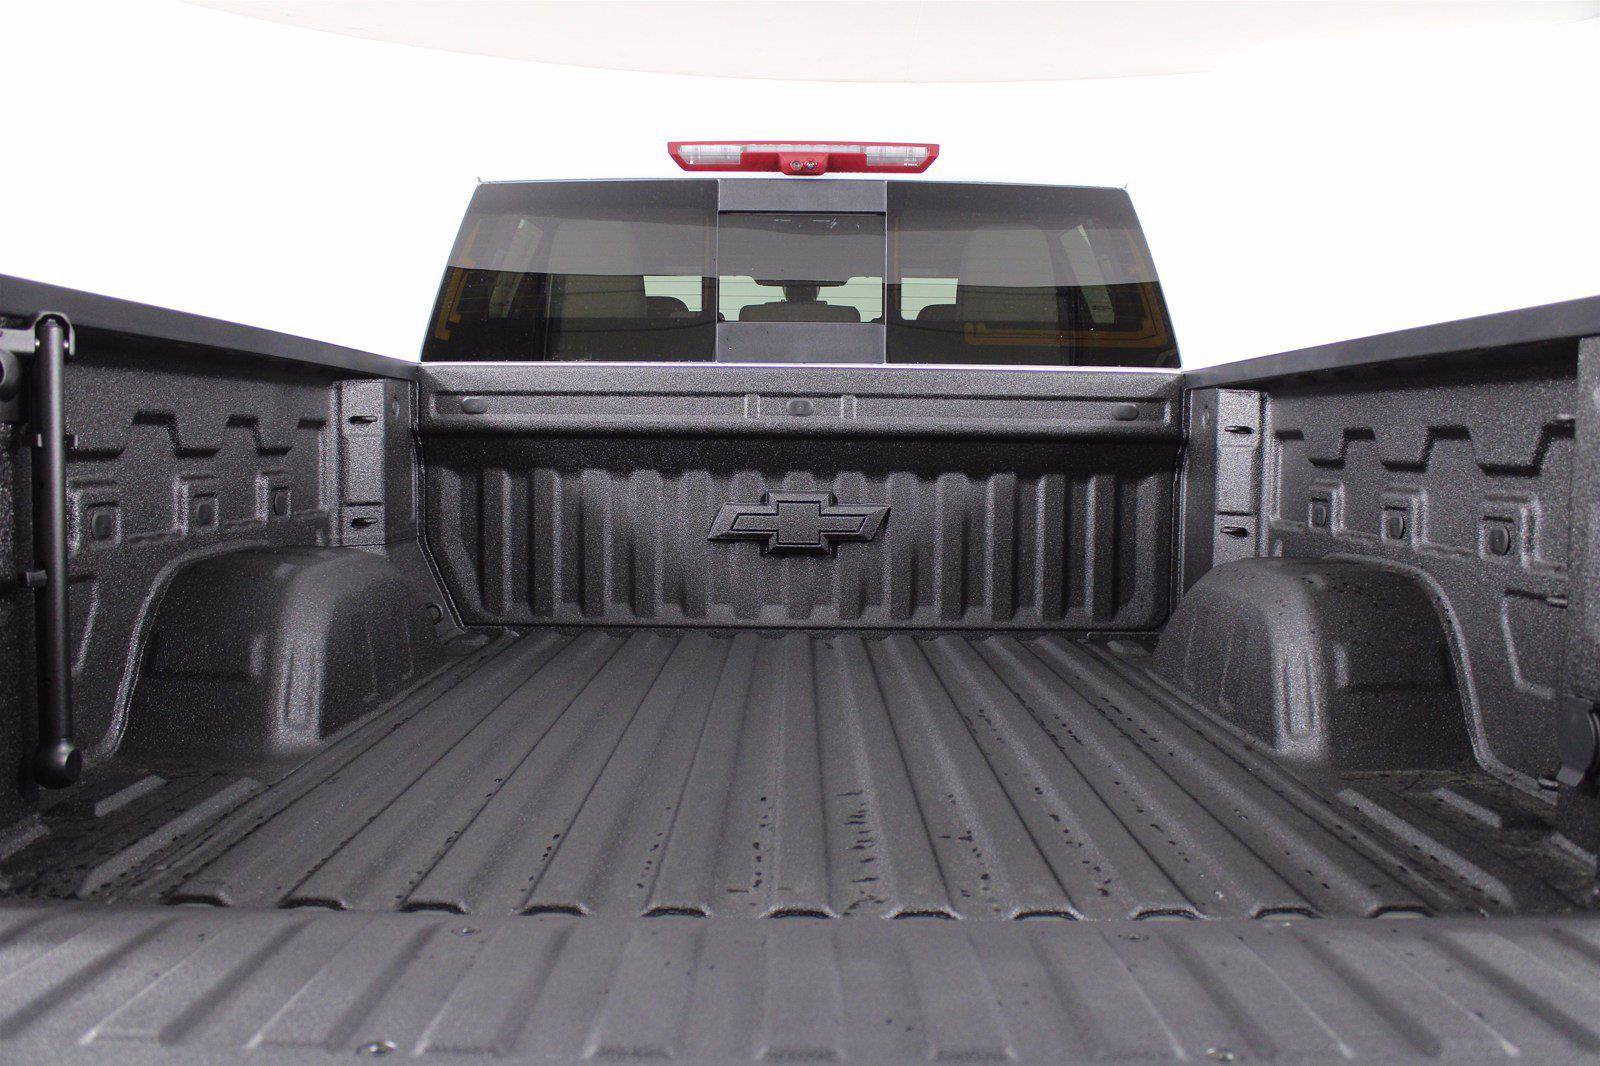 2021 Chevrolet Silverado 1500 Crew Cab 4x4, Pickup #D110856 - photo 9